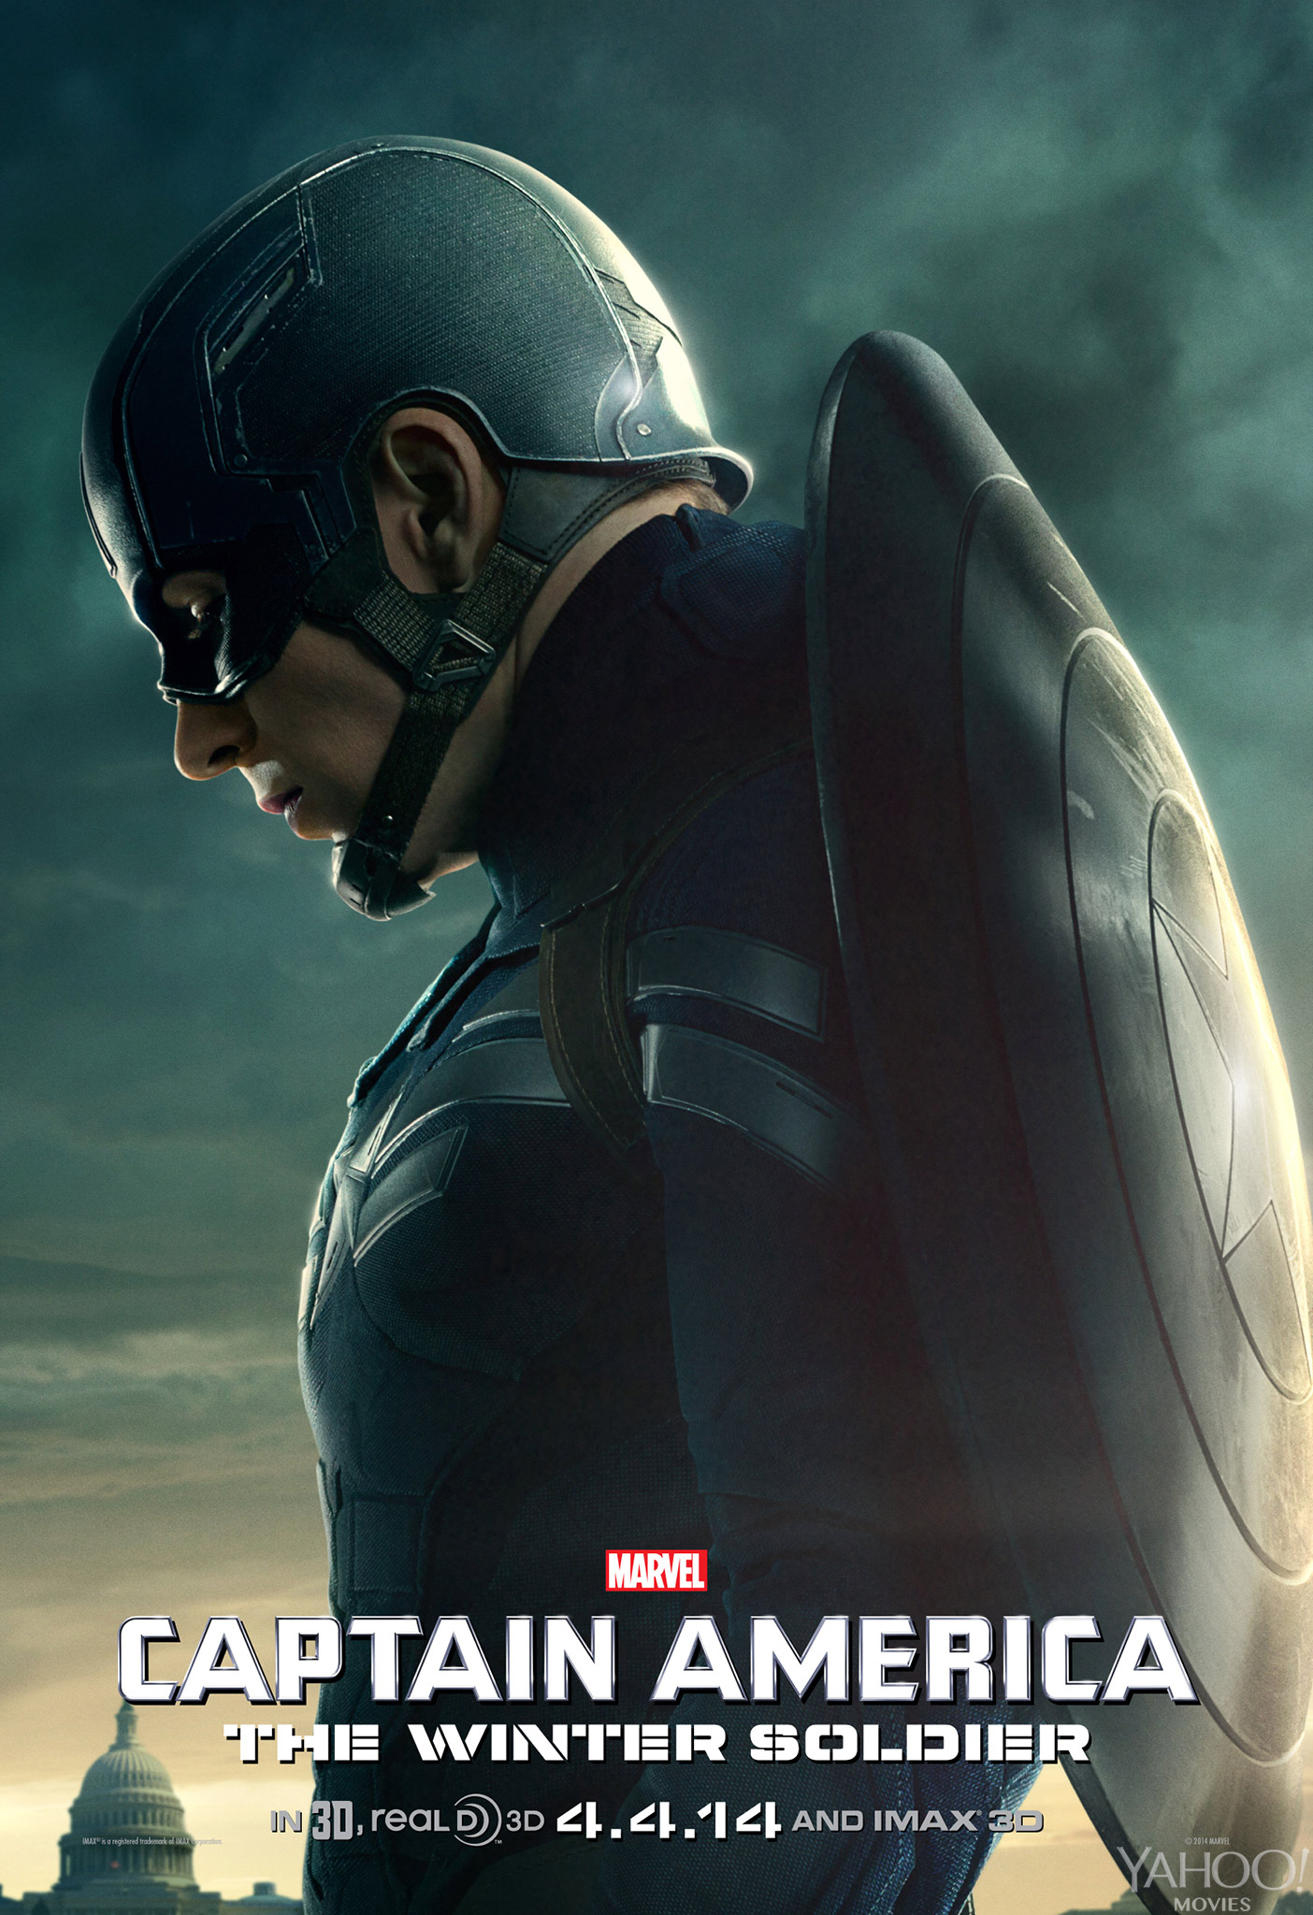 Captain America: The Winter Soldier, coming soon to theaters near you, unless it's already there